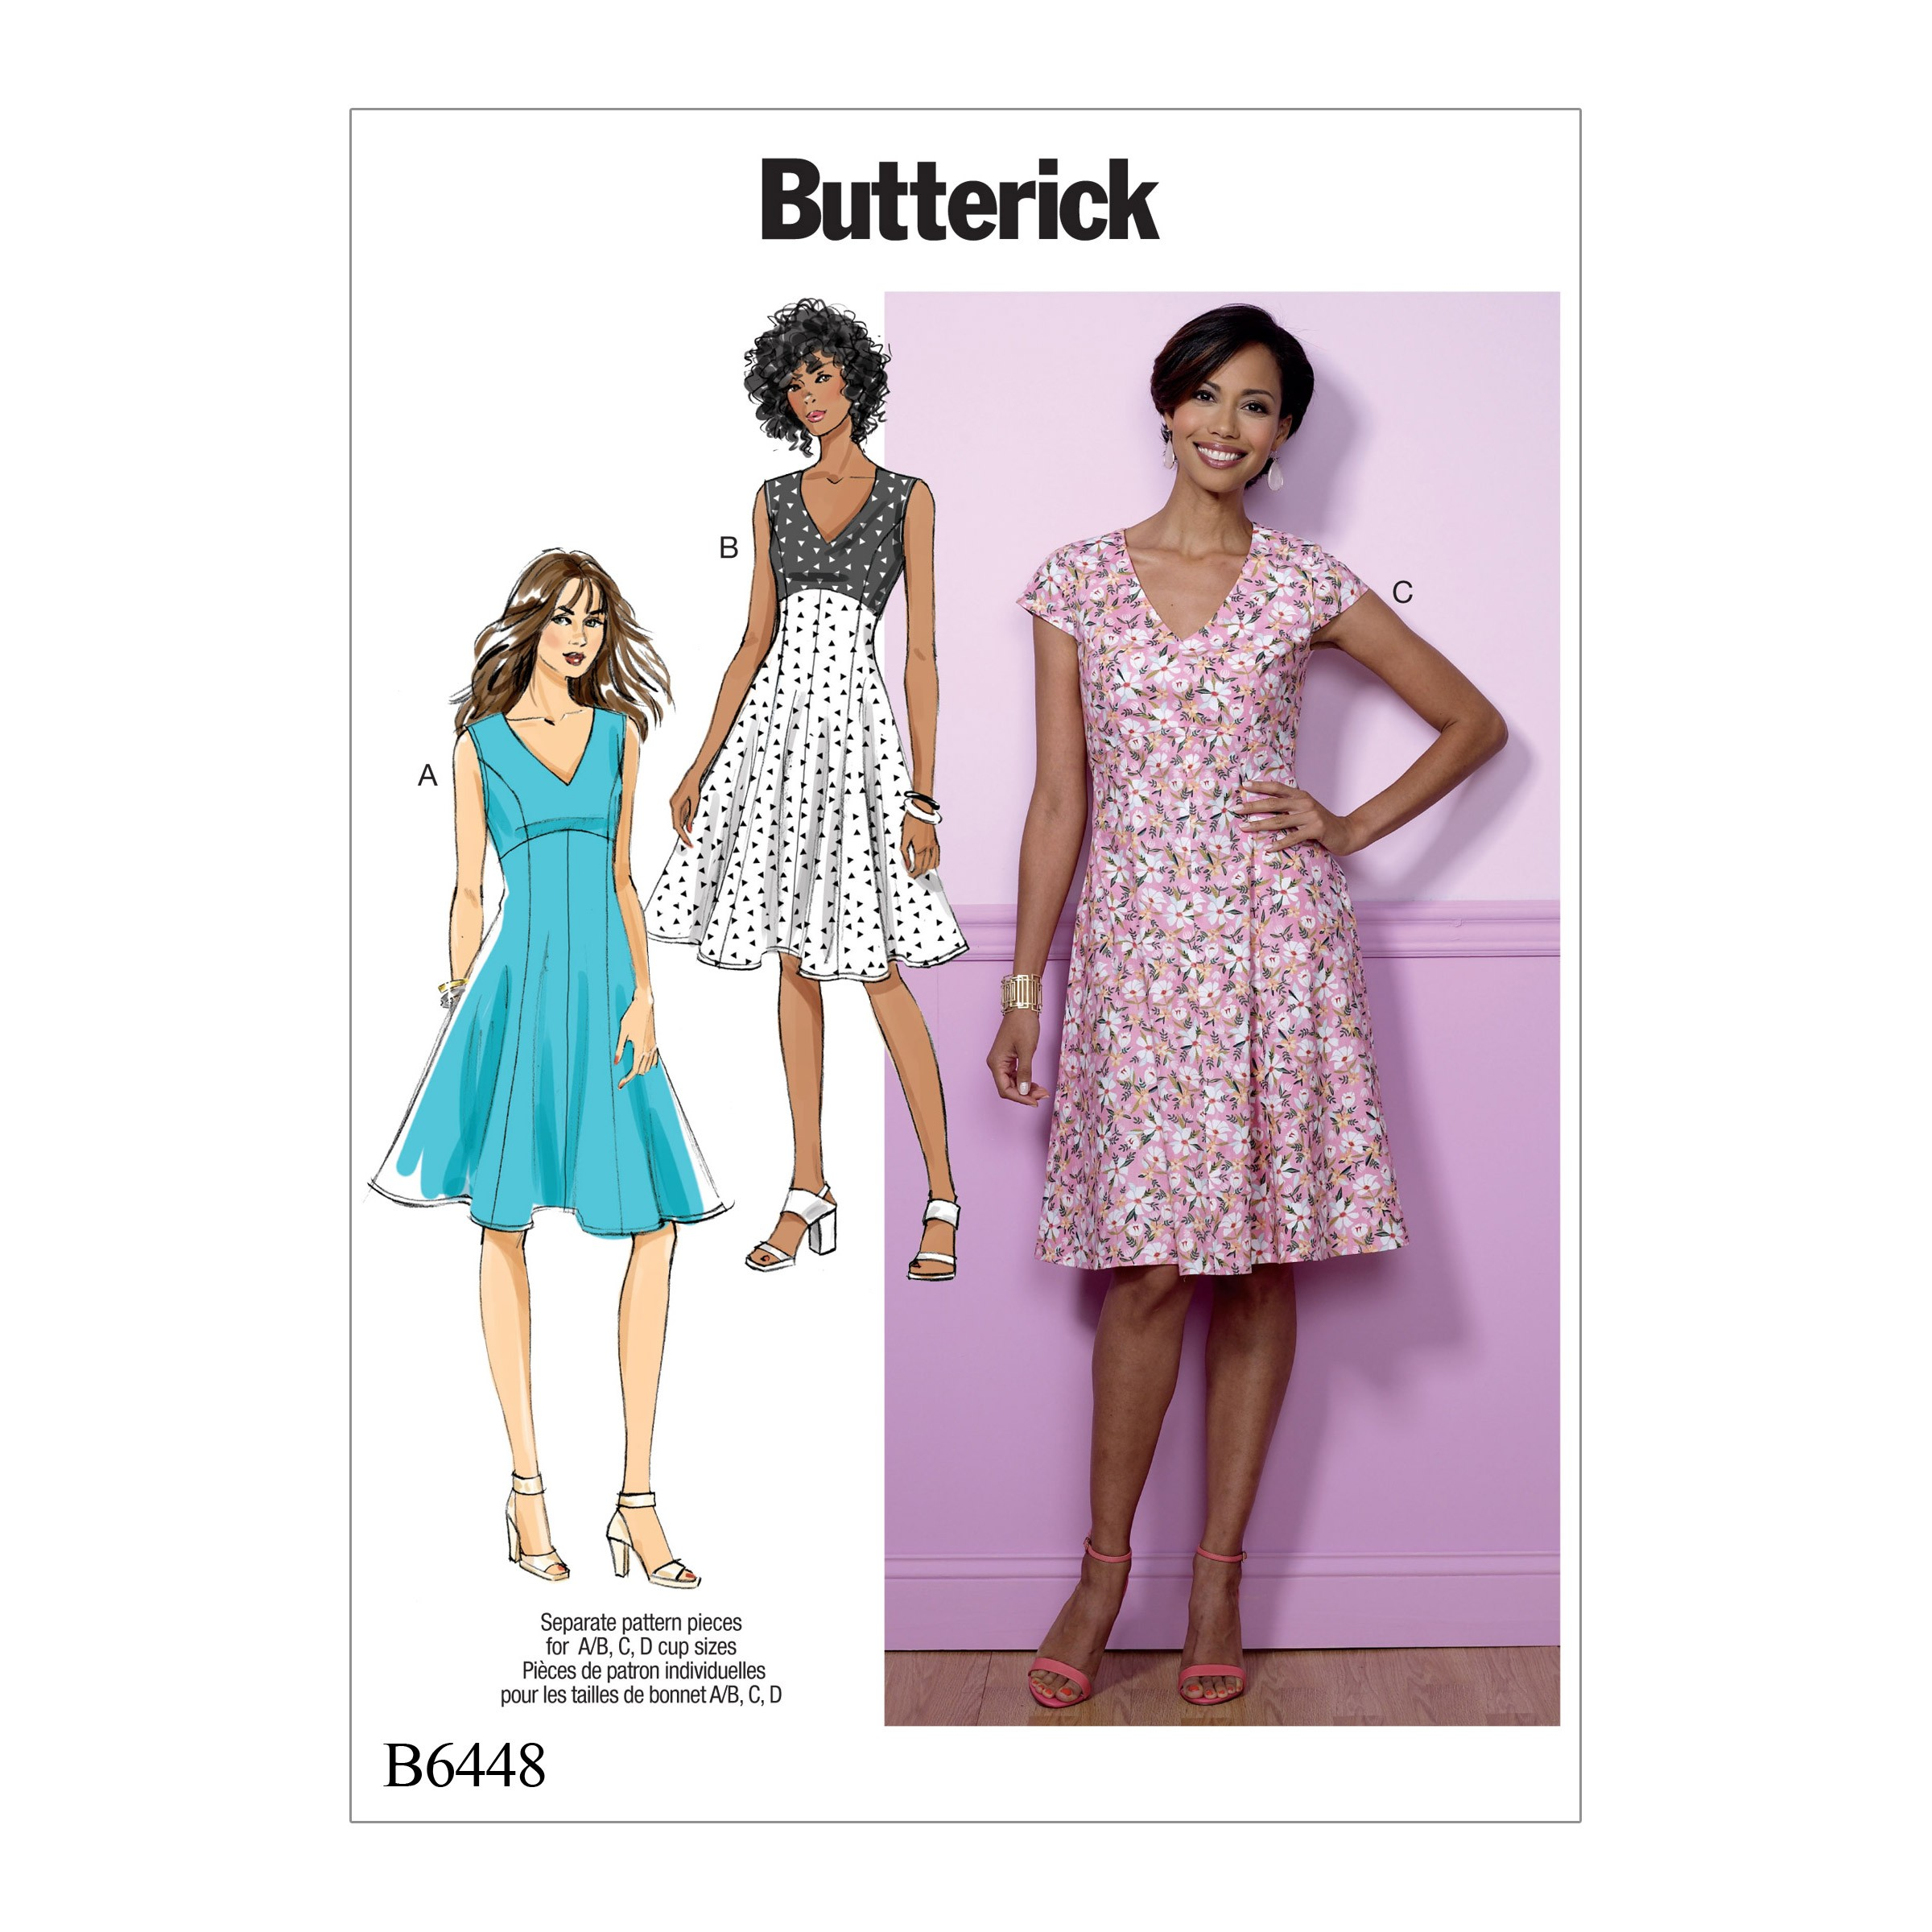 Butterick Sewing Pattern 6448 Misses' Fit & Flare Empire Waist Dress